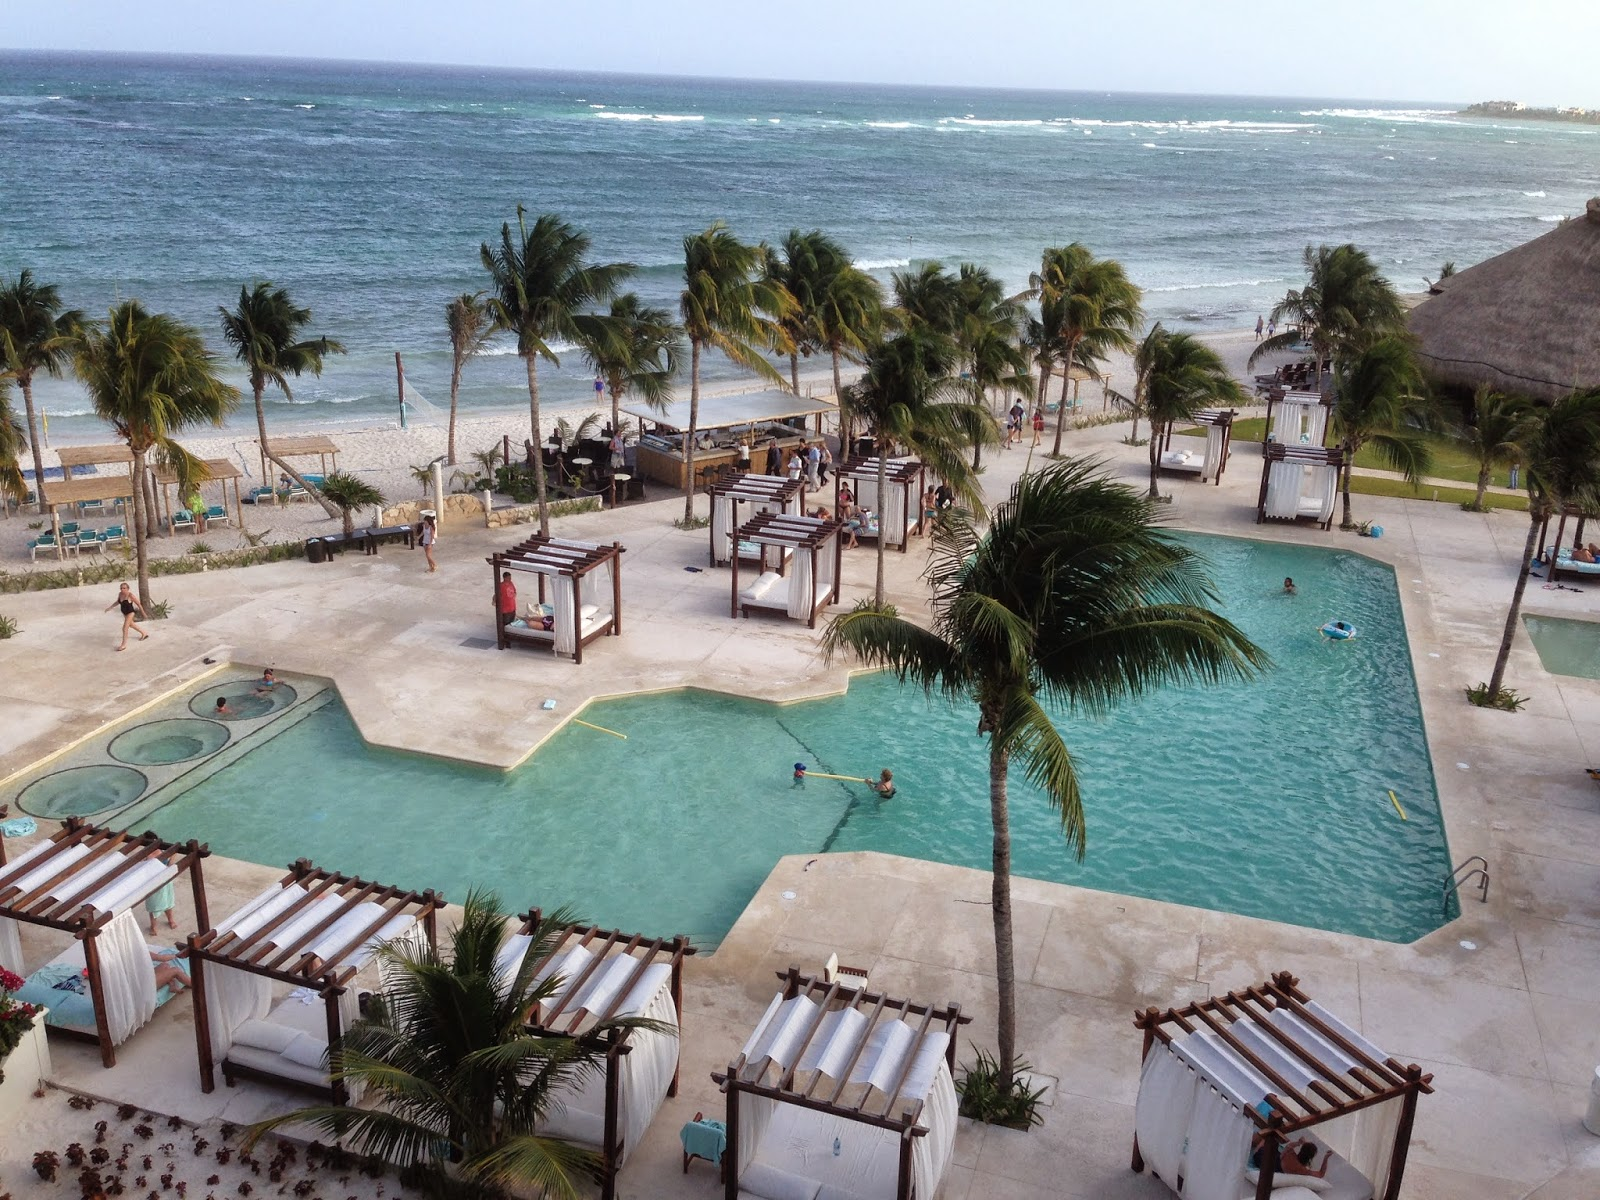 Aal Mexico Beach Resort The Best Beaches In World